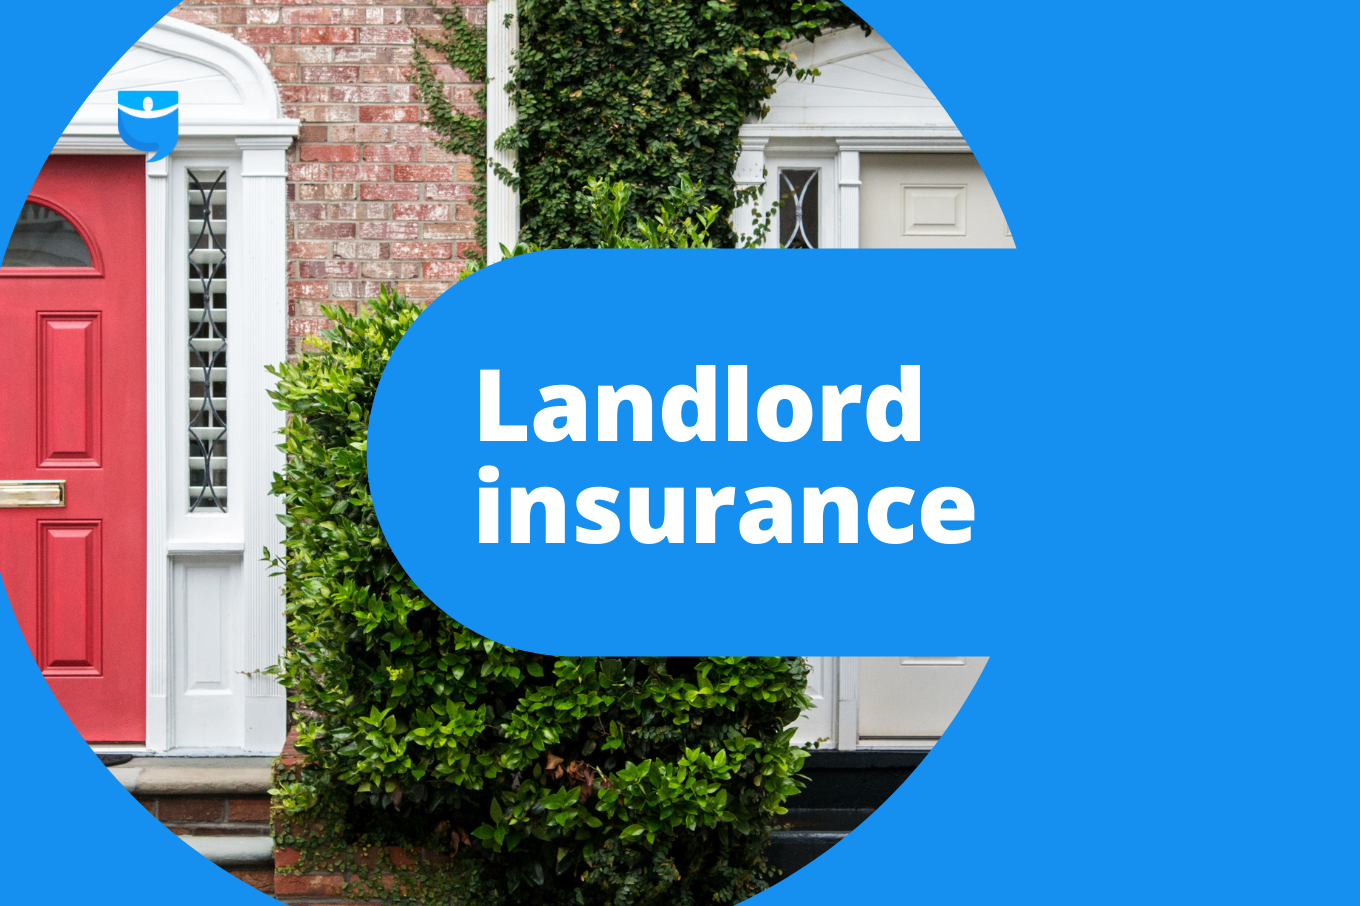 How to Protect Your Property With Landlord Insurance